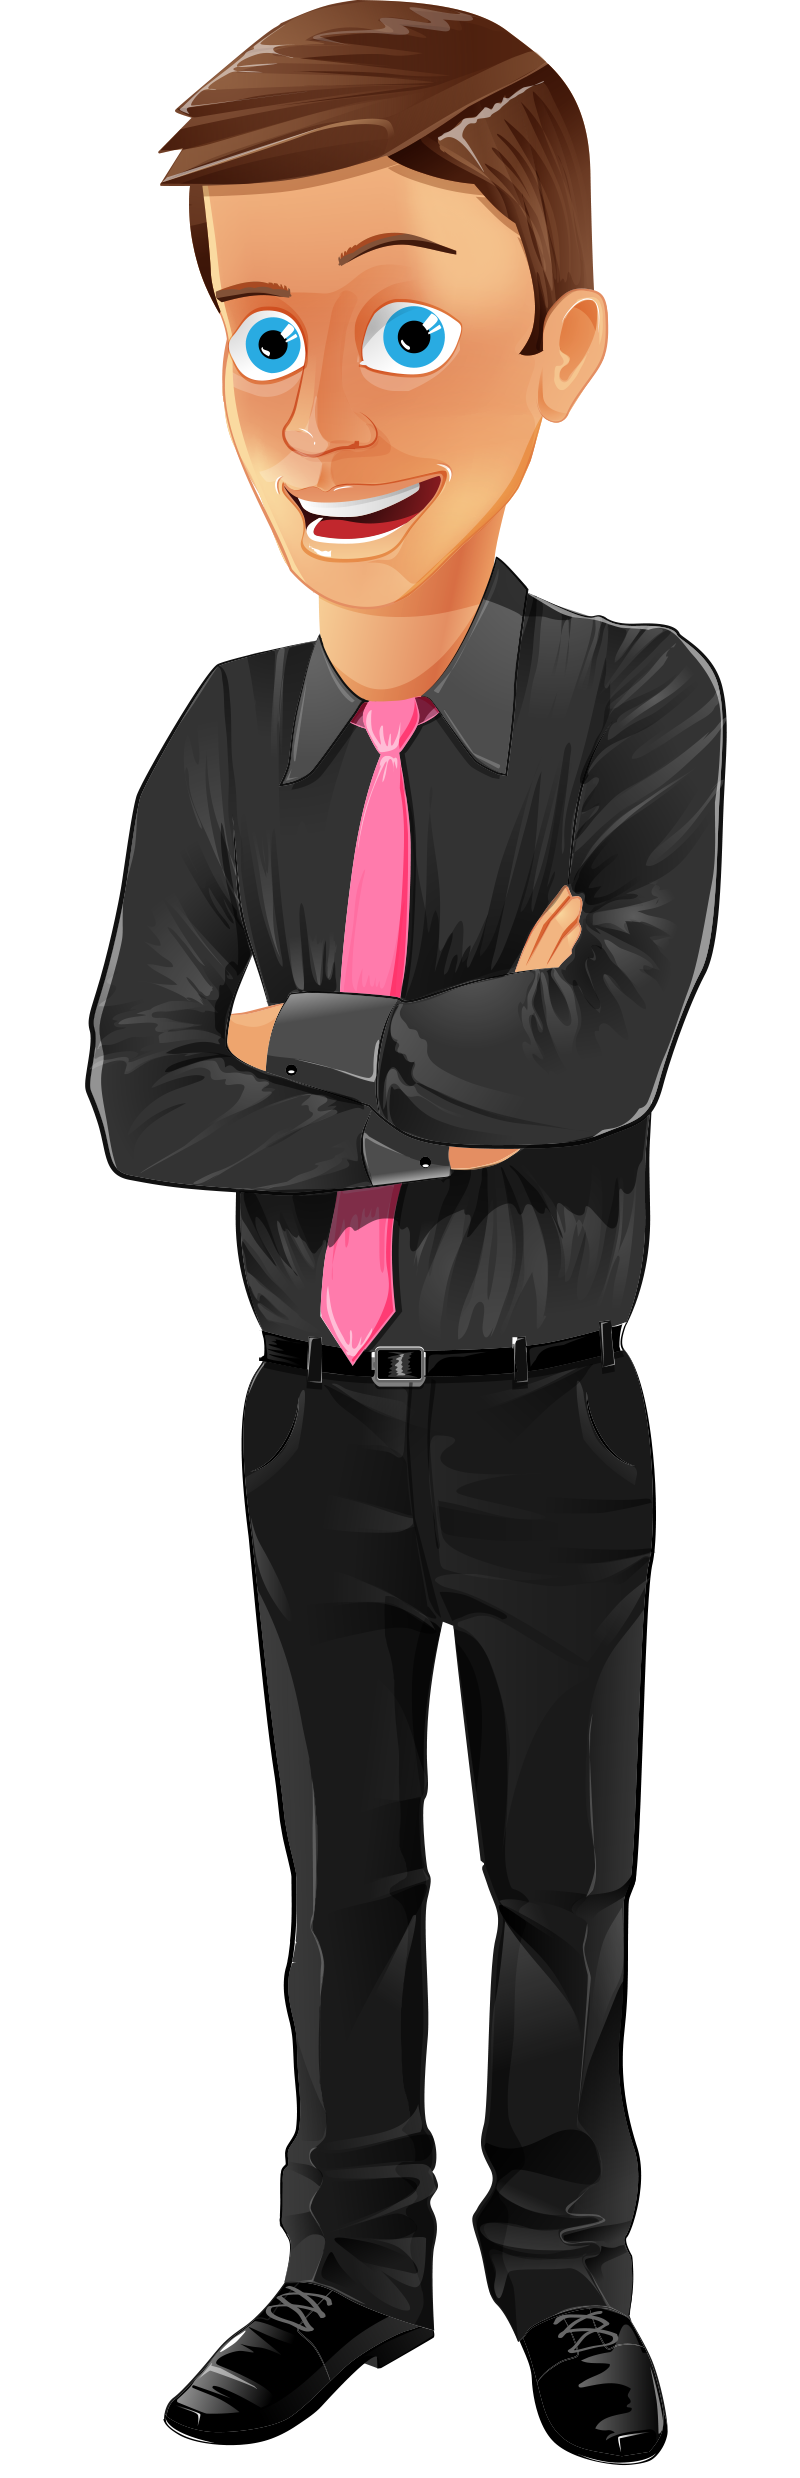 Office assistant vector character. Young clipart young gentleman